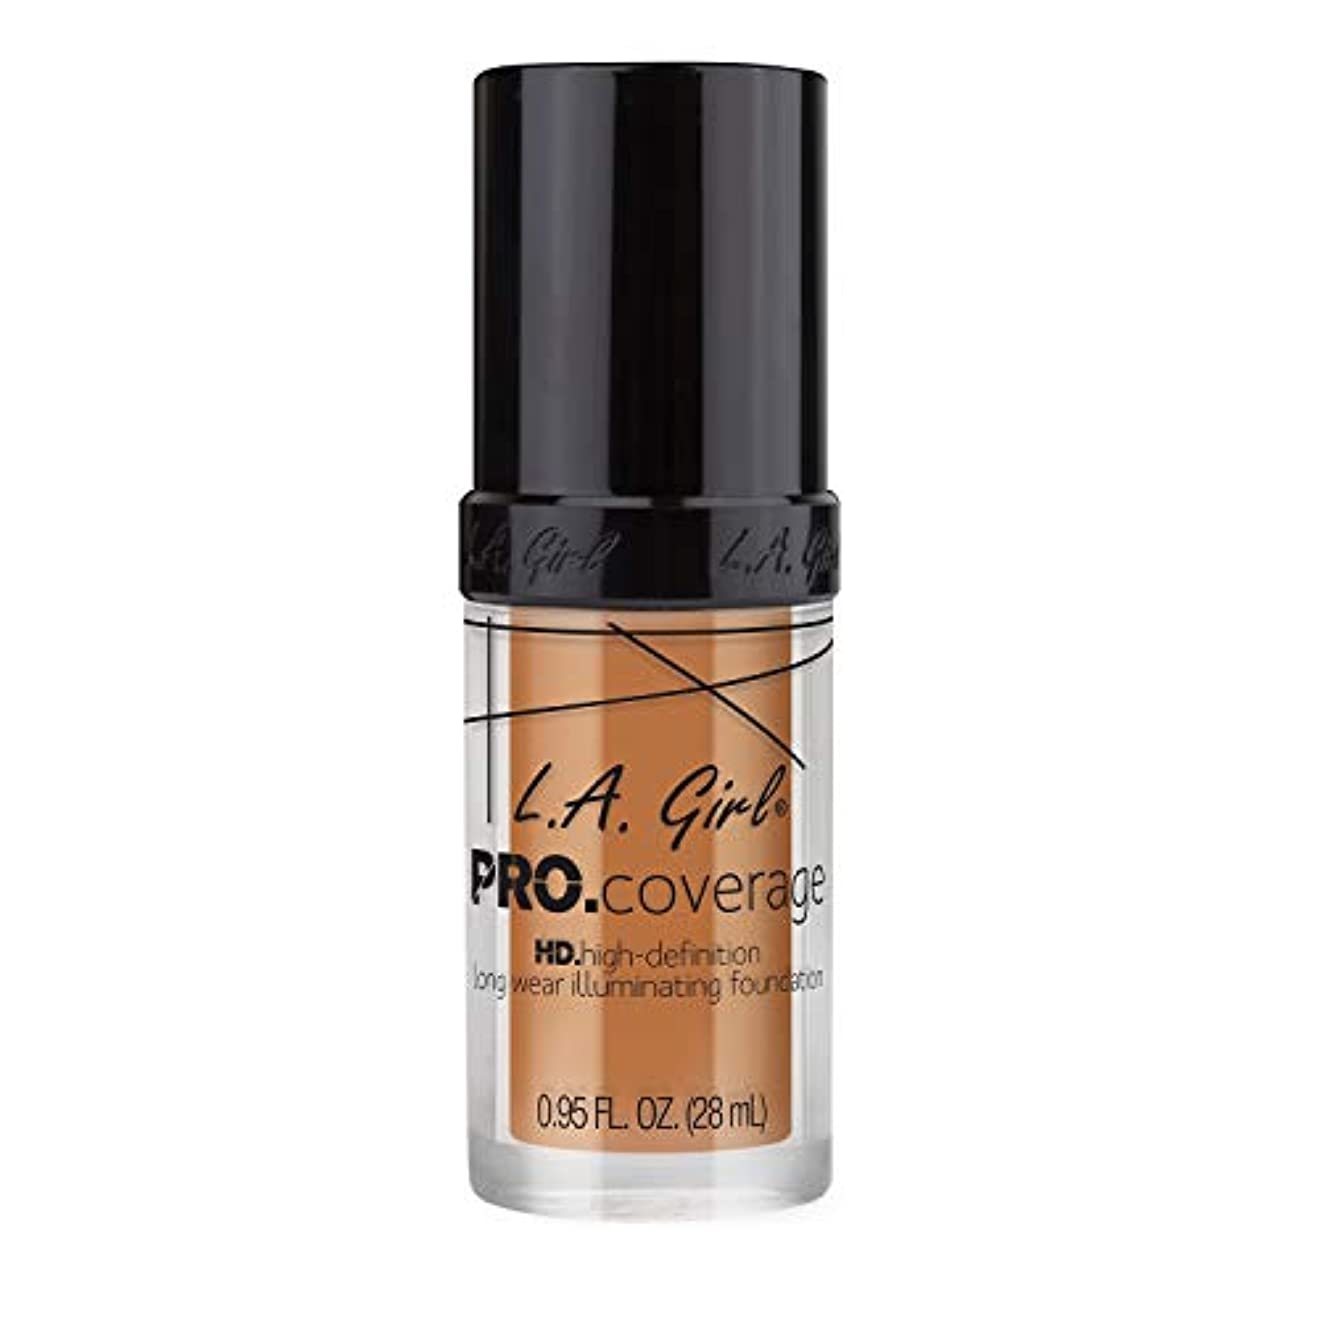 病気だと思う喉頭第三L.A. Girl Pro Coverage Illuminating Foundation - Tan (並行輸入品)